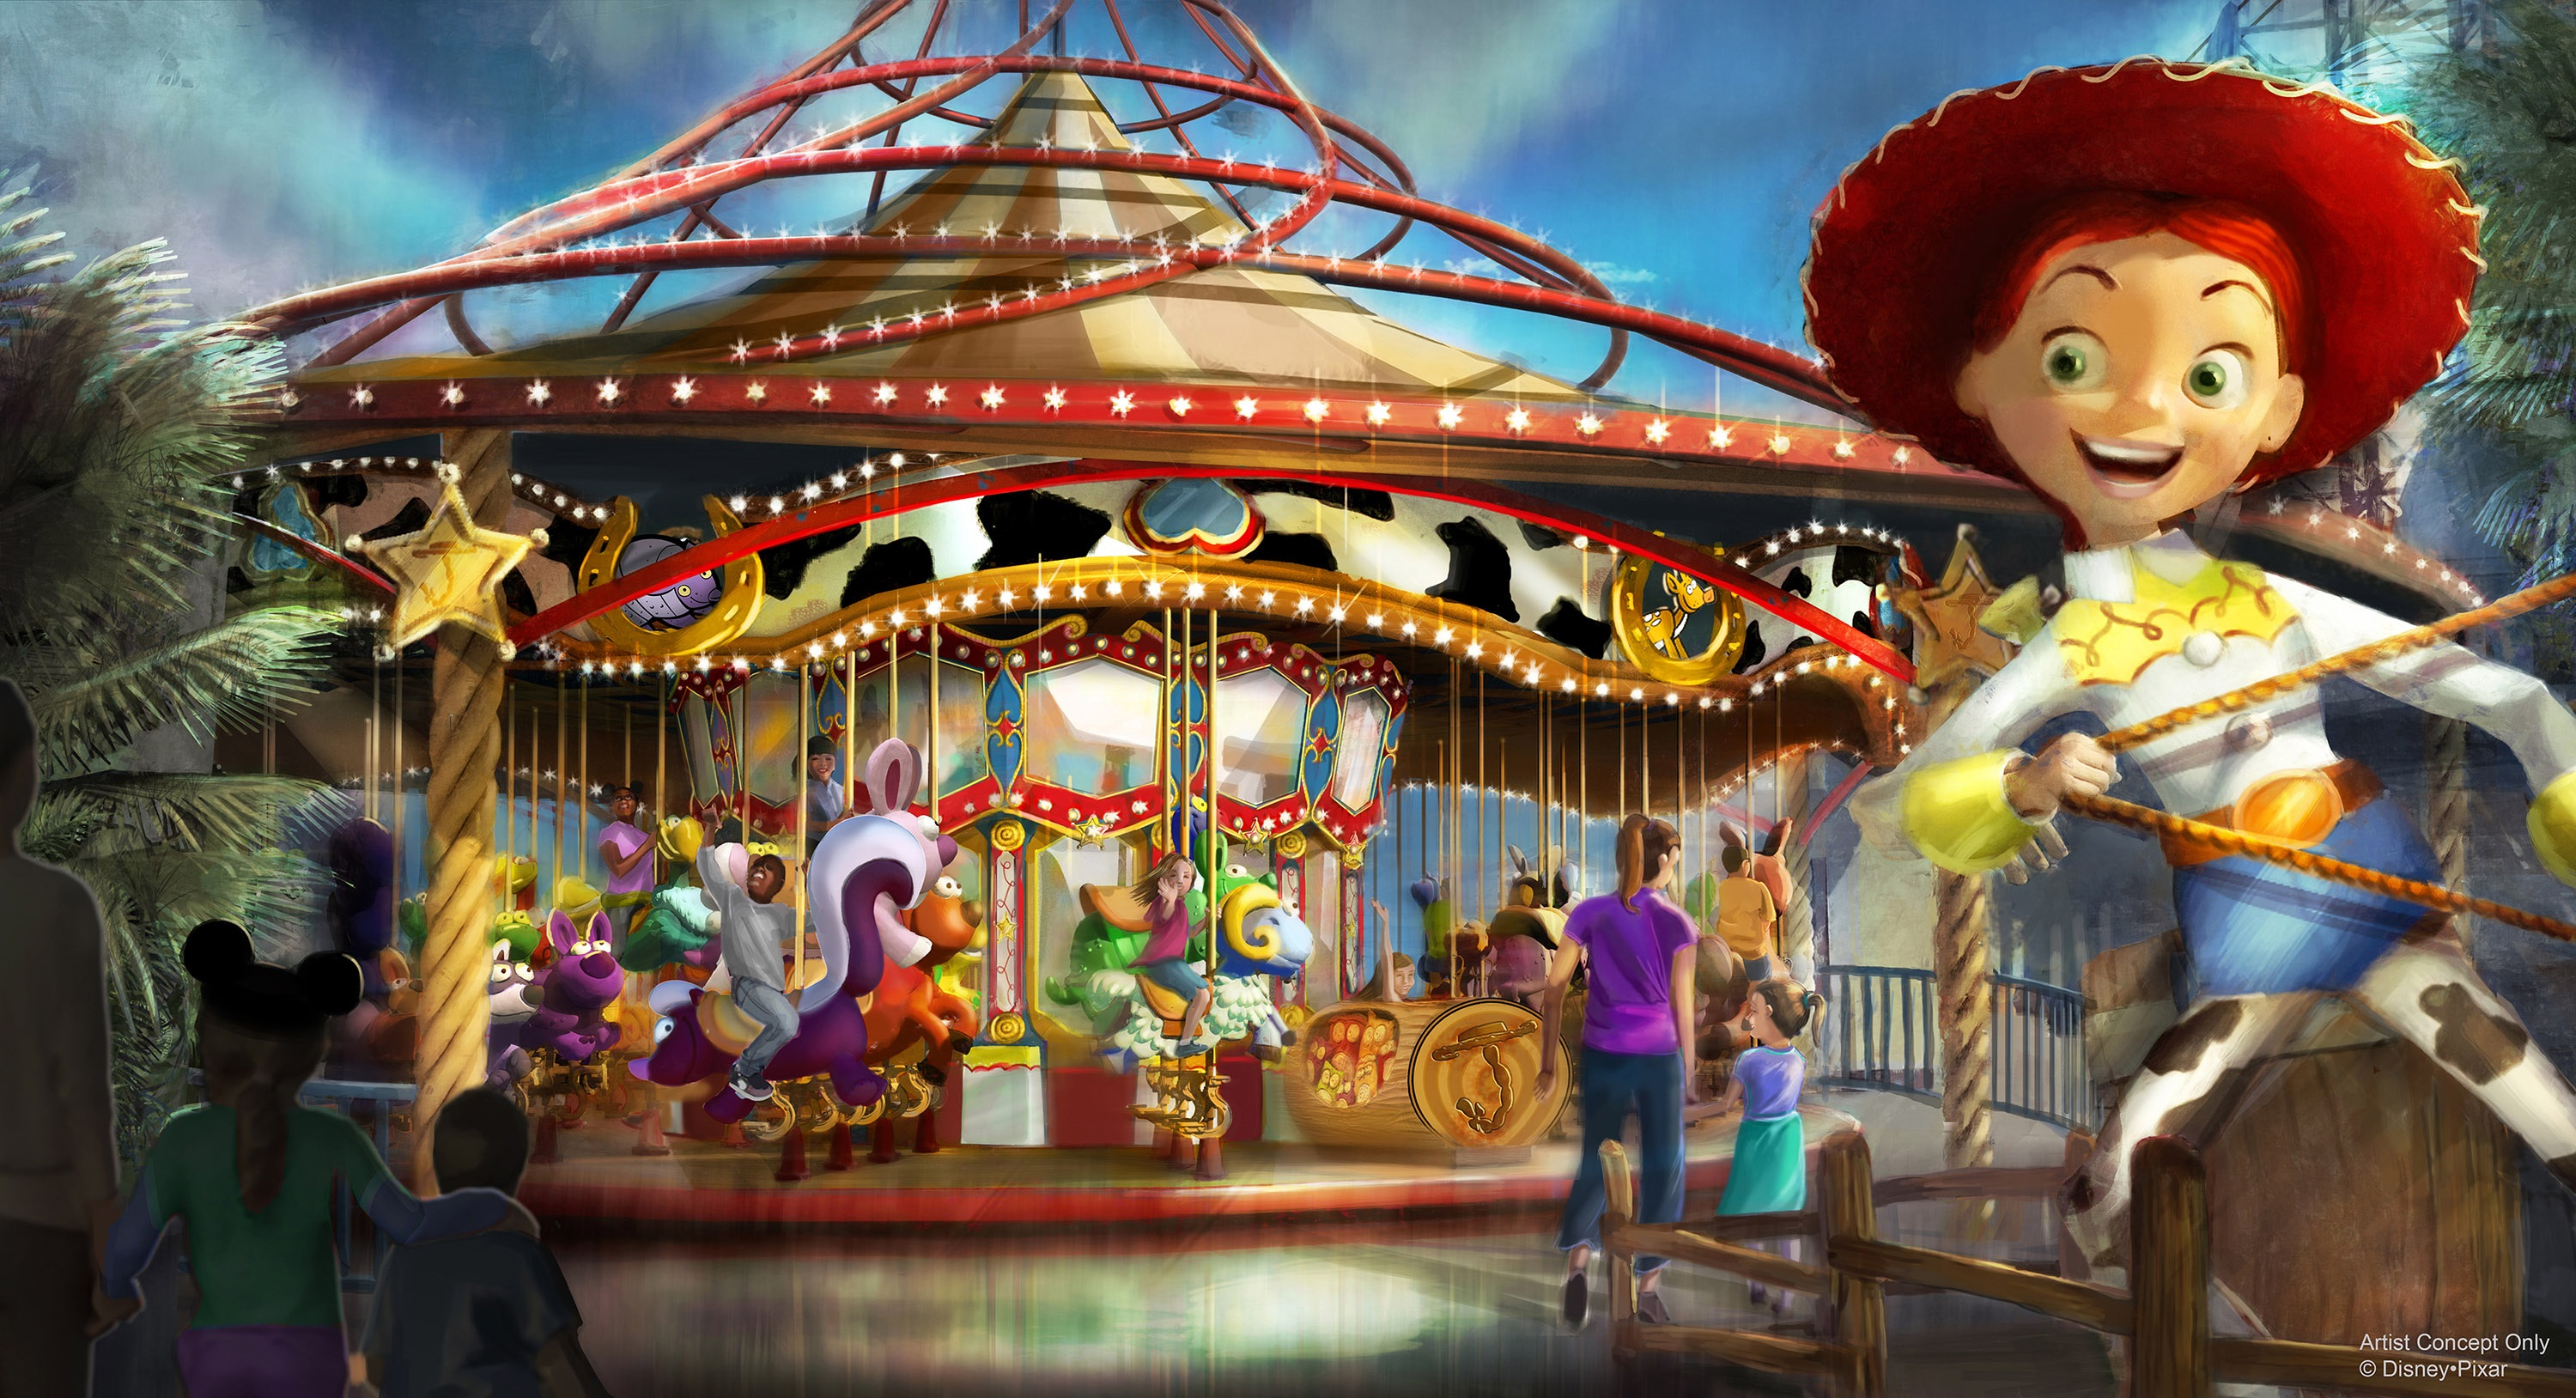 """Slide 14 of 15: JESSIE'S CRITTER CAROUSEL AT PIXAR PIER — Jessie's Critter Carousel, a future attraction coming to Pixar Pier, is inspired by Jessie's wilderness friends featured in Woody's Roundup television show from """"Toy Story 2"""". Jessie's Critter Carousel is a classic boardwalk carousel play set with a whimsical spin from those colorful Pixar characters. As seen in this artist concept, Jessie the Yodeling Cowgirl invites guests to saddle up on one of her adorable critters for a rootin' tootin' spin. Jessie's Critter Carousel will be located in the neighborhood inspired by Disney•Pixar's """"Toy Story."""" (Disney•Pixar)"""